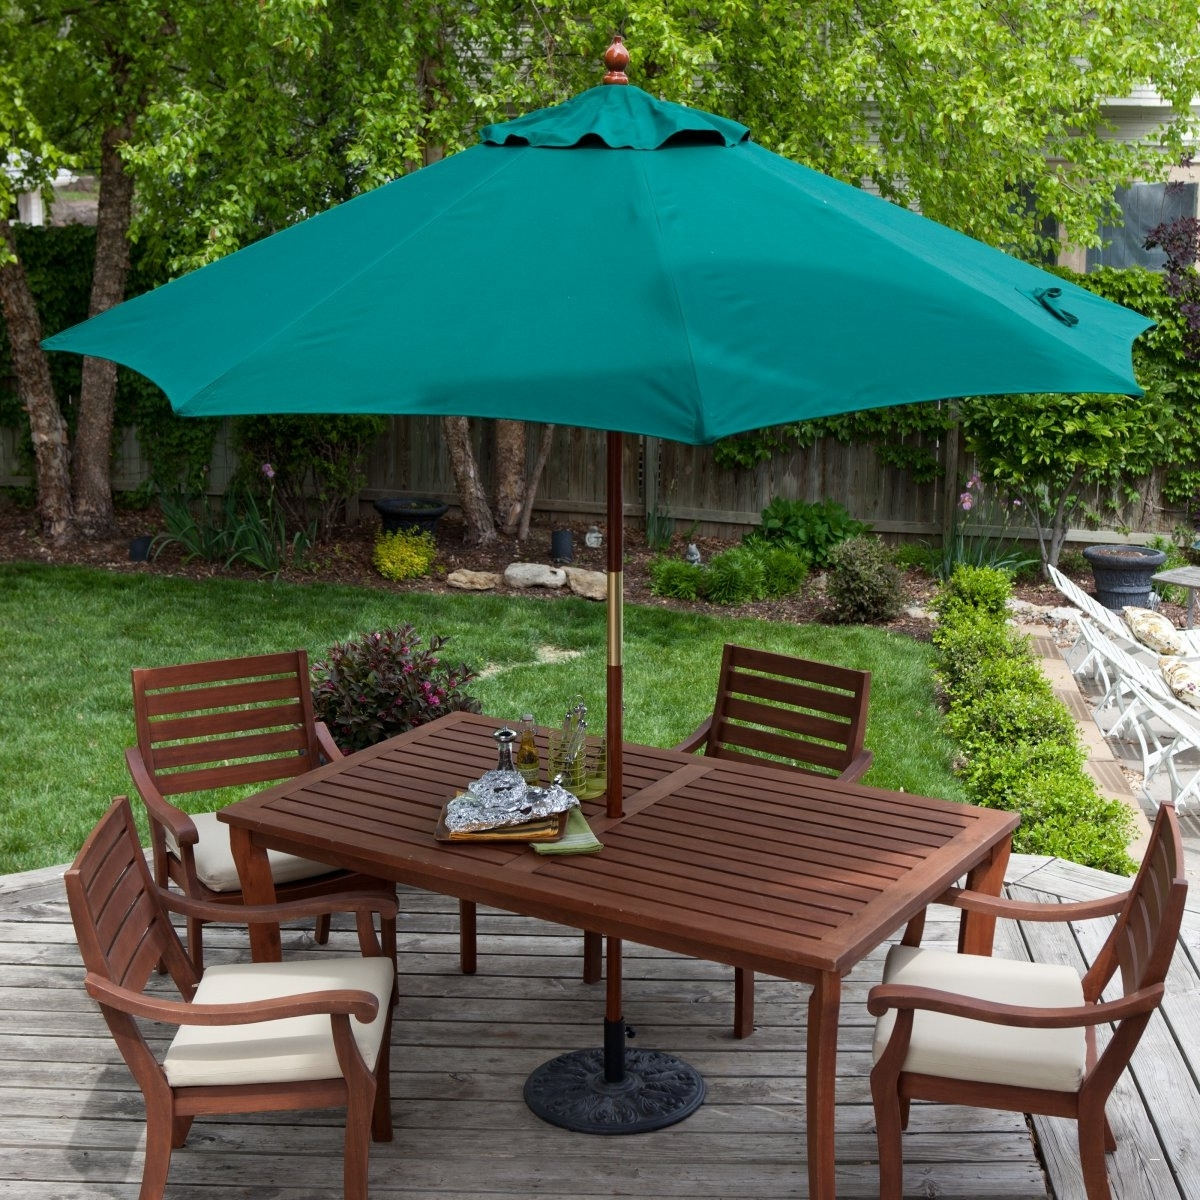 Current Small Patio Table With Umbrella Hole – Luxury Metal Patio Table With In Small Patio Tables With Umbrellas Hole (View 5 of 20)